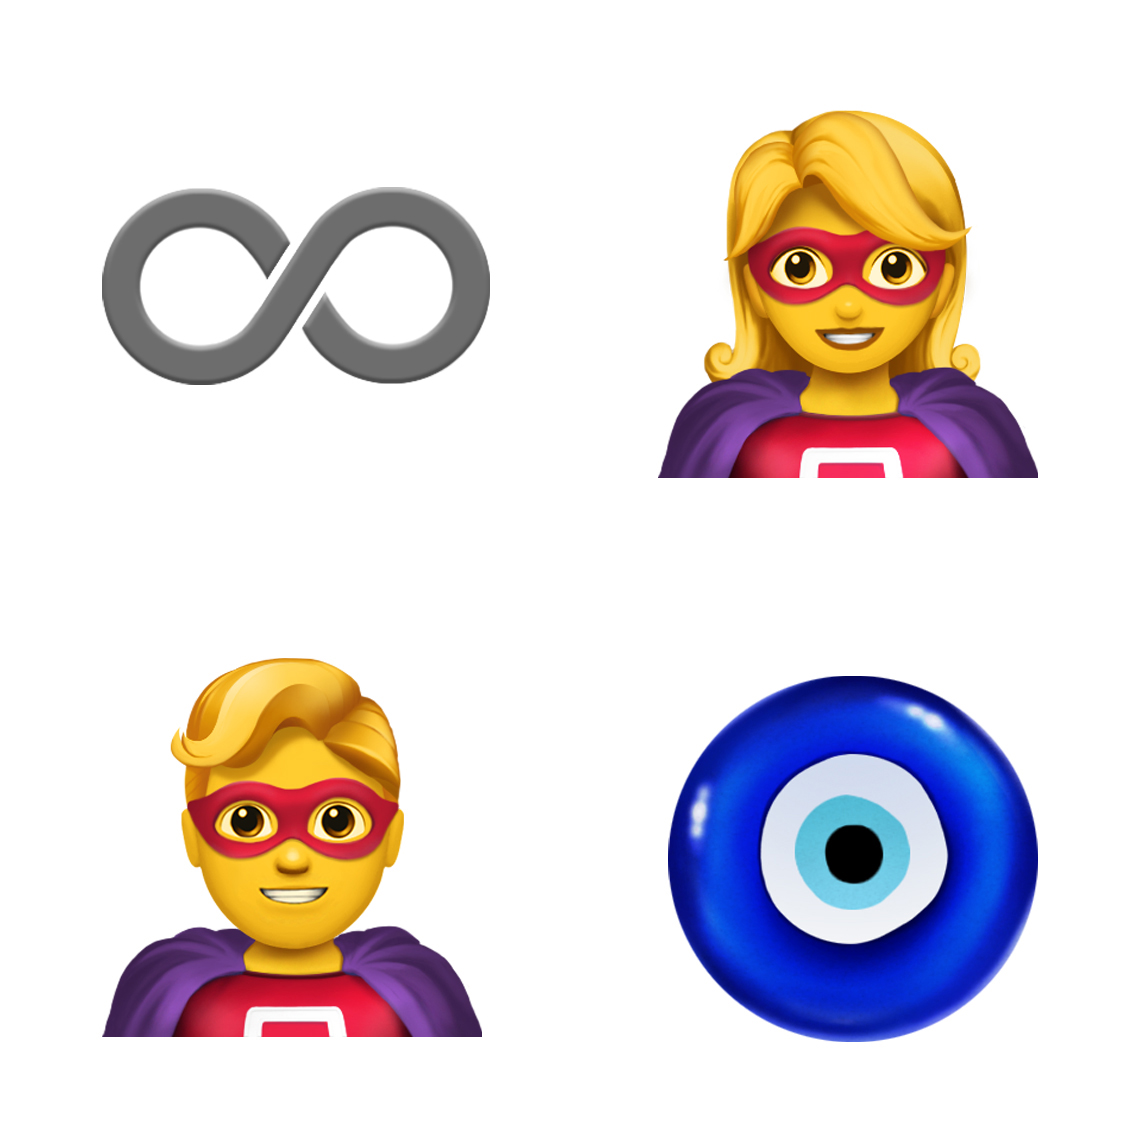 Four emoji clockwise from top left: infinity sign, female superhero, nazar amulet and male superhero.